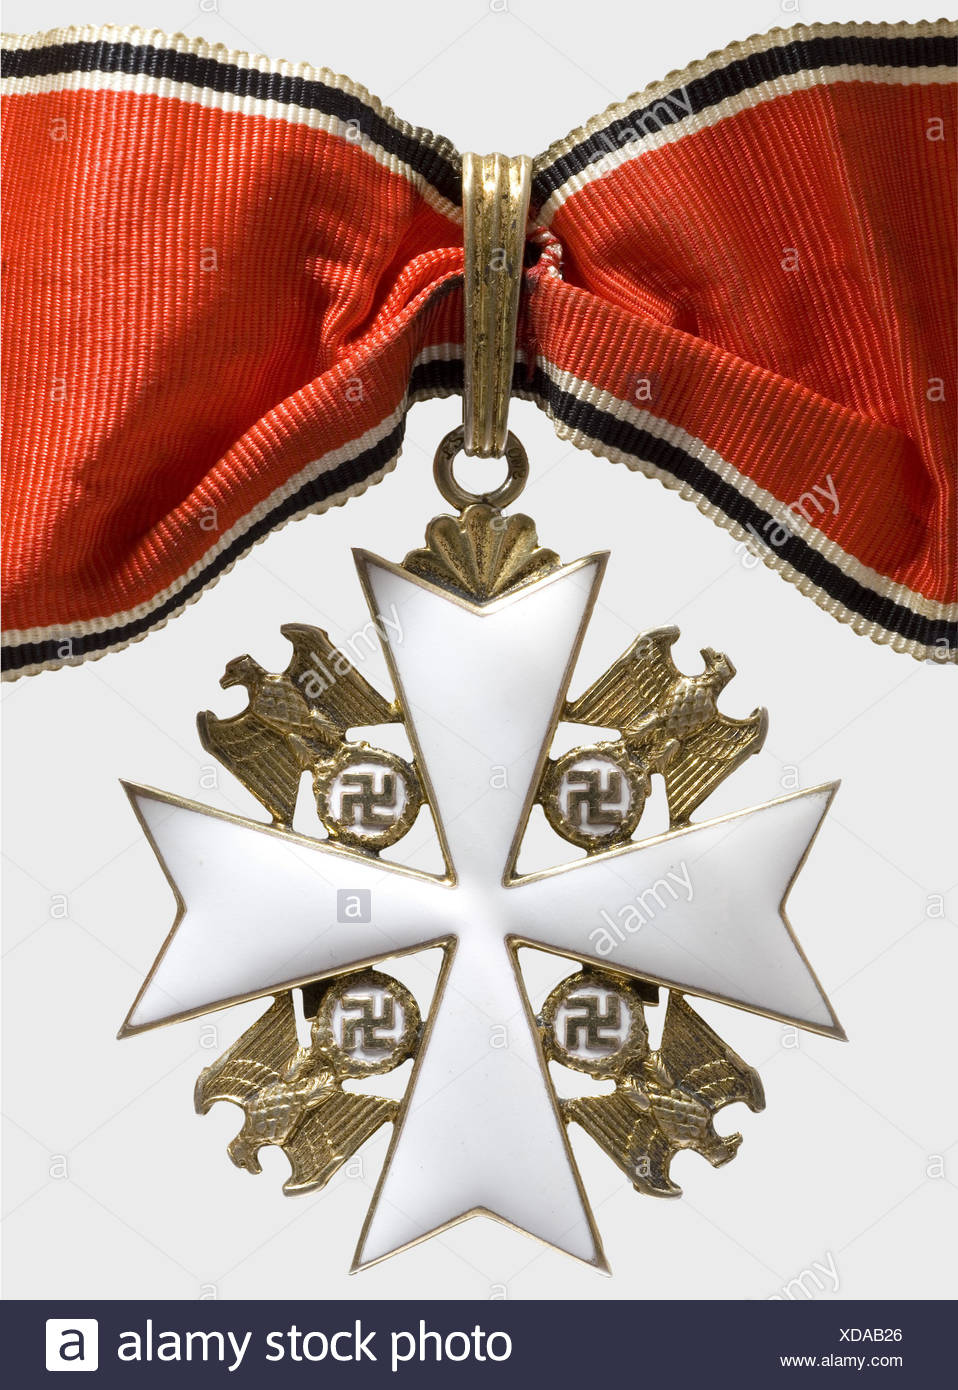 Meritorious Order of the German Eagle, a 2nd Class cross with swords (1943 - 1945) Neck cross, silver, gilt and enamelled. Rigid ring on a leave shaped agraffe. '21' maker's mark for Godet, Berlin and '900' mark of fineness. Applied, gilt swords. 50 x 50 mm, weight 28.05 g. The neck ribbon is included (OEK 3474)., historic, historical, 1930s, 20th century, awards, award, German Reich, Third Reich, Nazi era, National Socialism, object, objects, stills, medal, decoration, medals, decorations, clipping, cut out, cut-out, cut-outs, honor, honour, National Socialist, Additional-Rights-Clearences-NA Stockbild